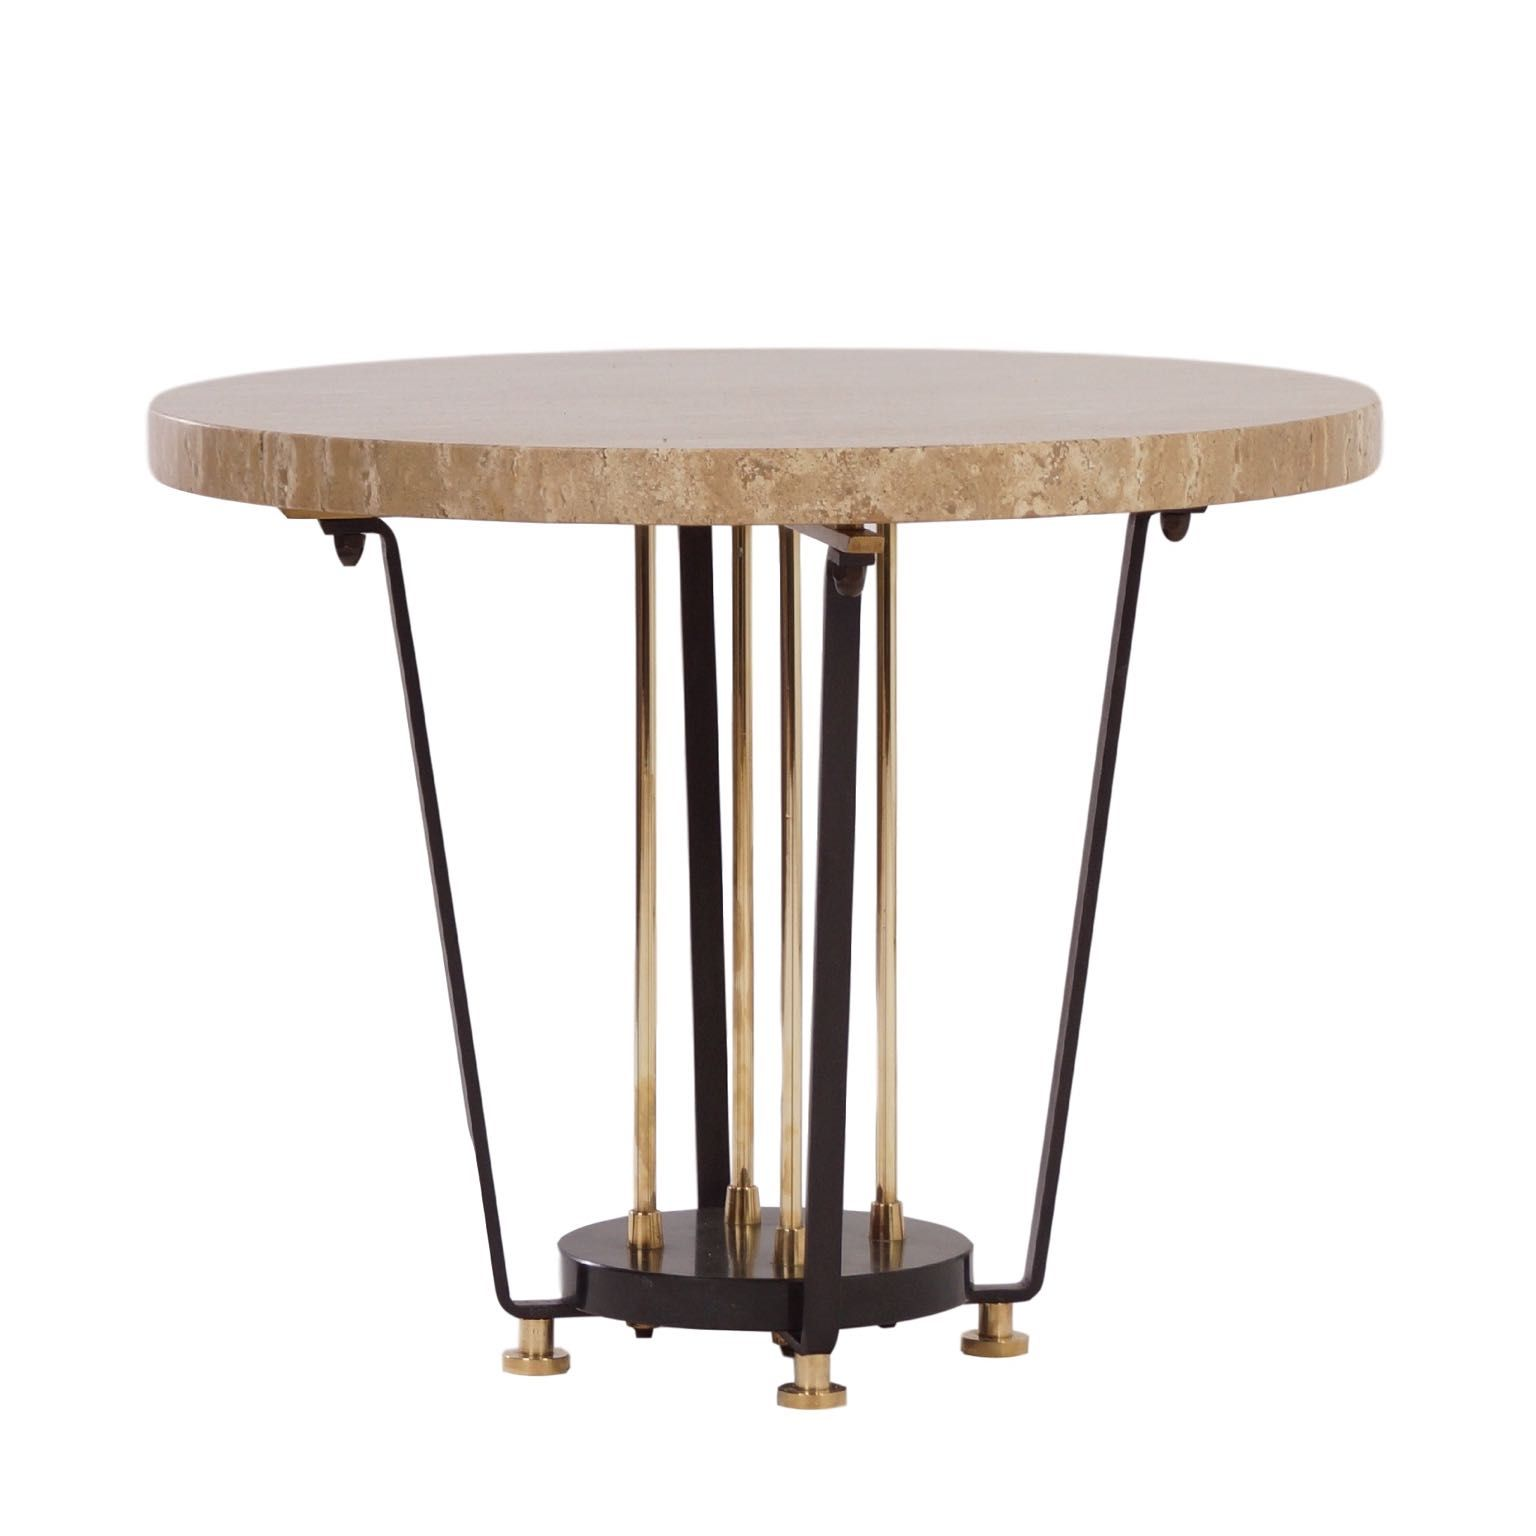 Italian Coffee Tables Marble Vintage Round Italian Center Table Of Brass And Marble 1950s